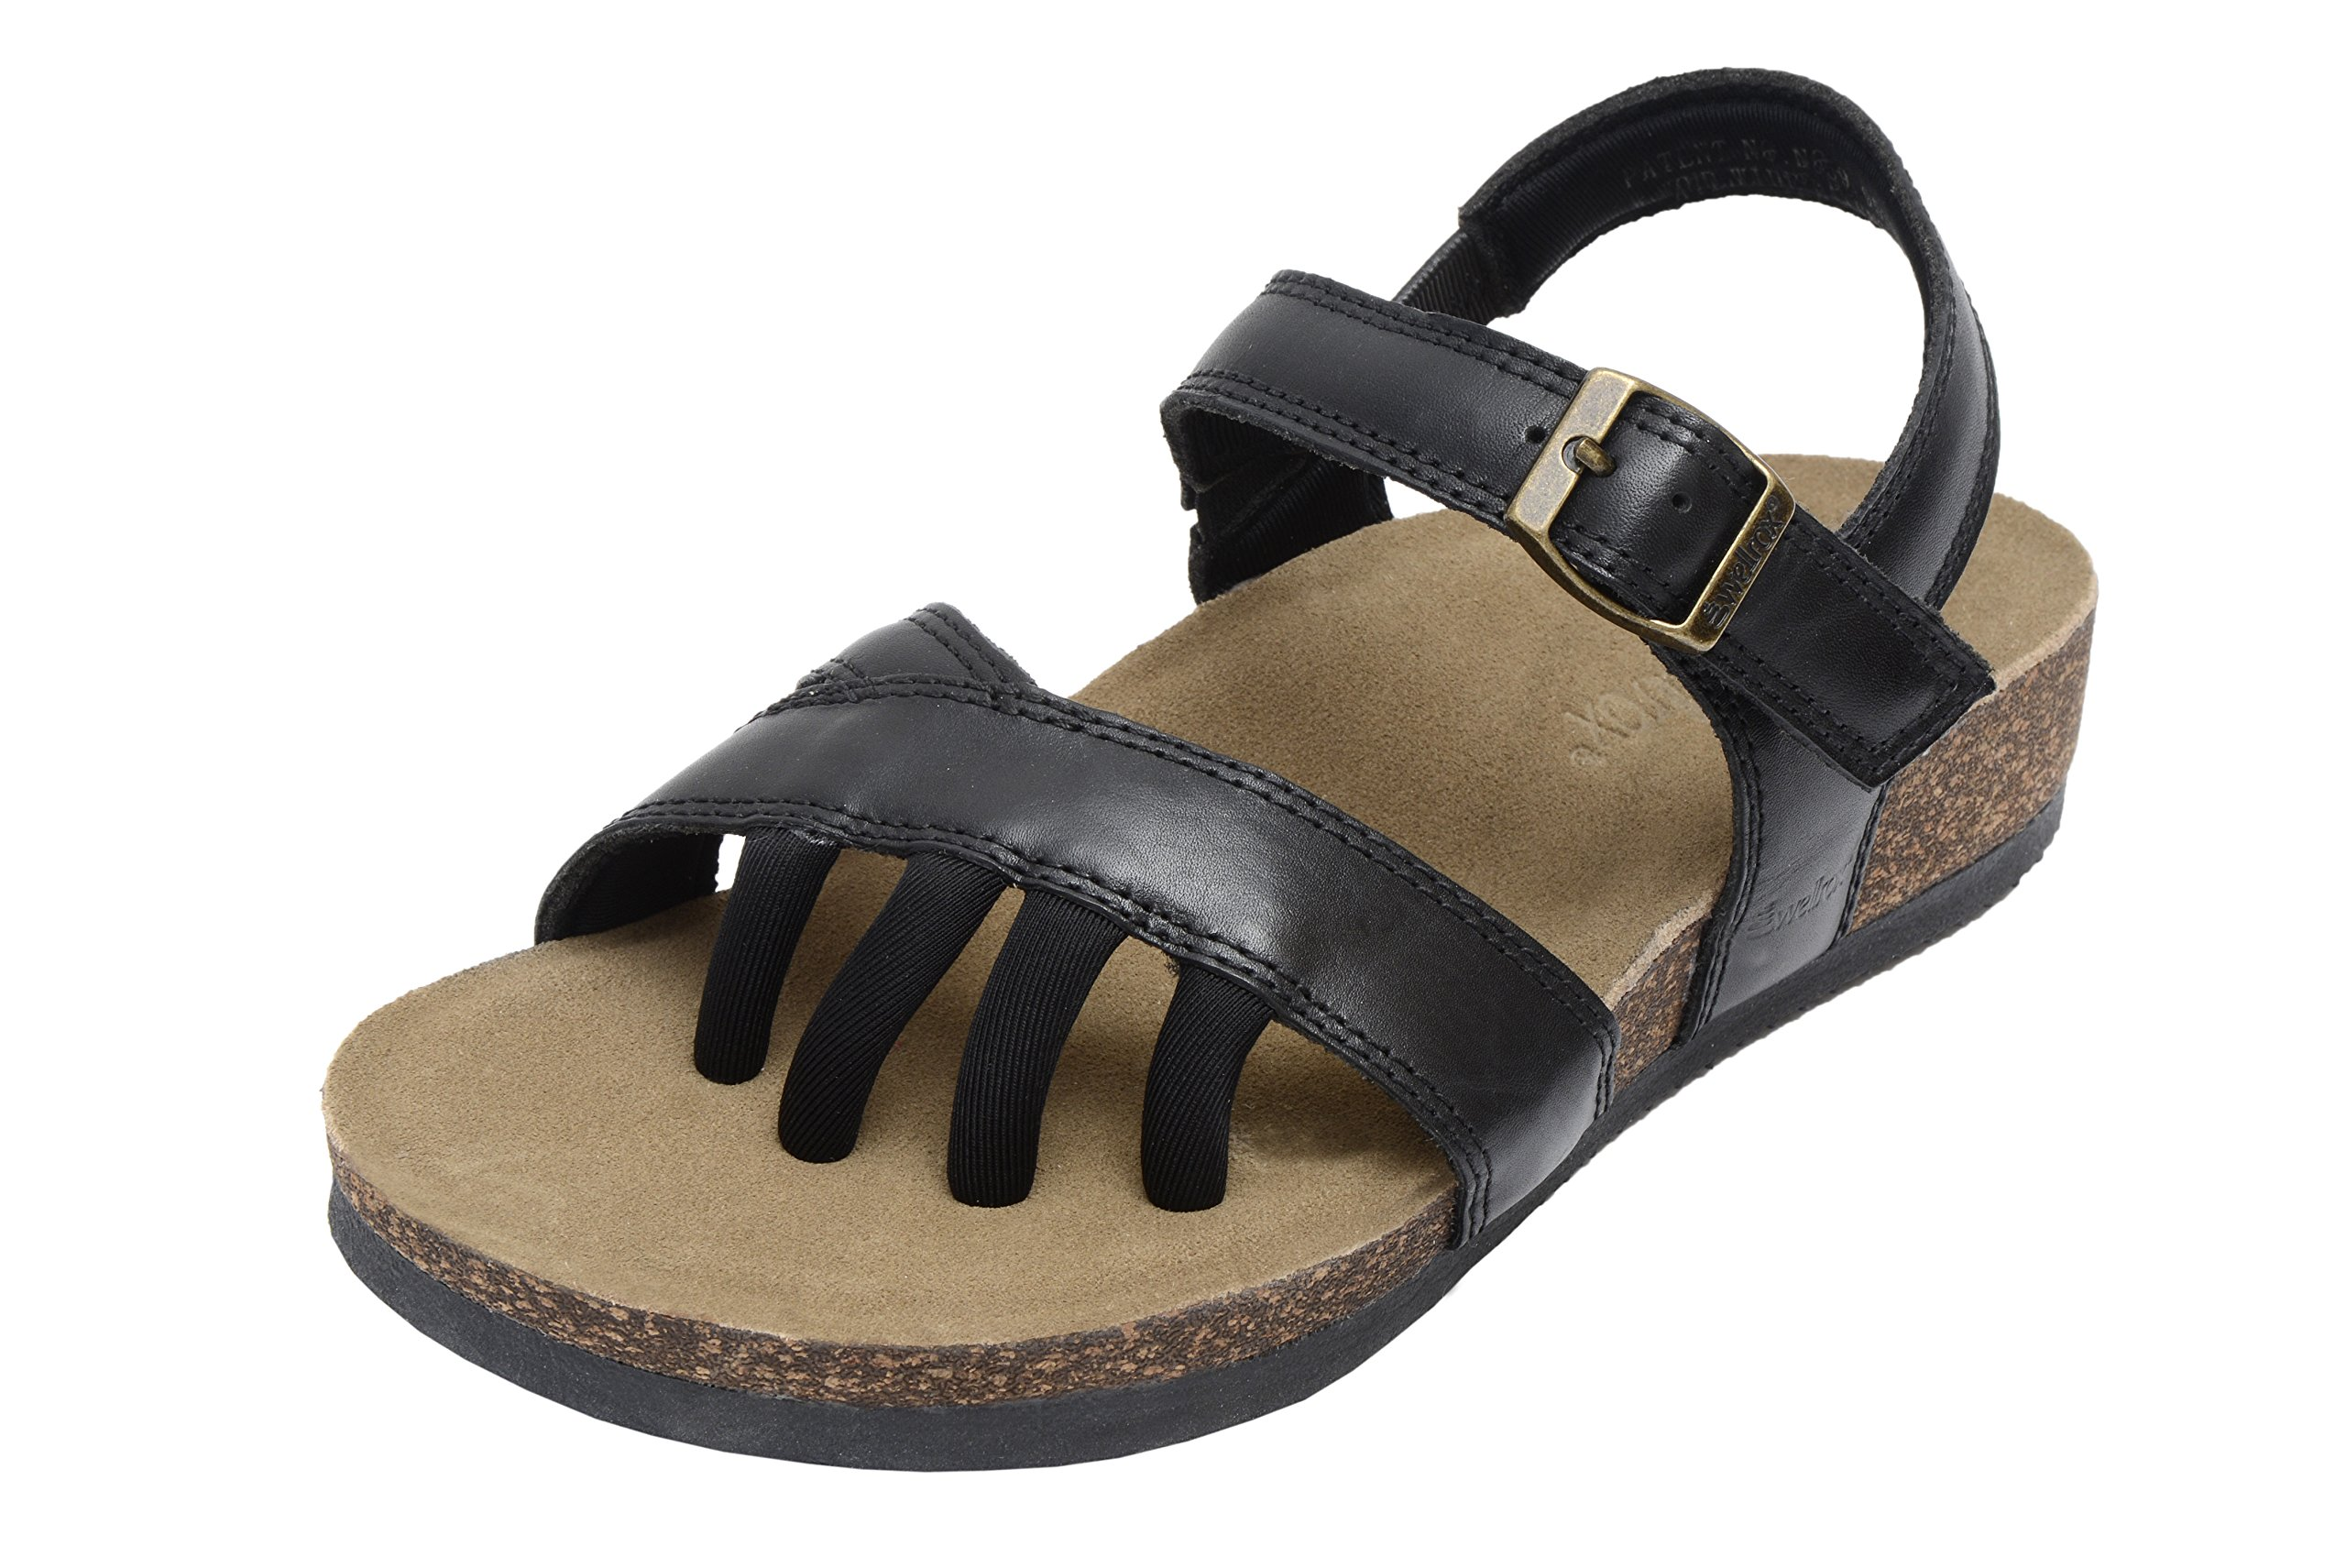 Wellrox Women's Santa Fee-Maddie Black Casual Sandal 10